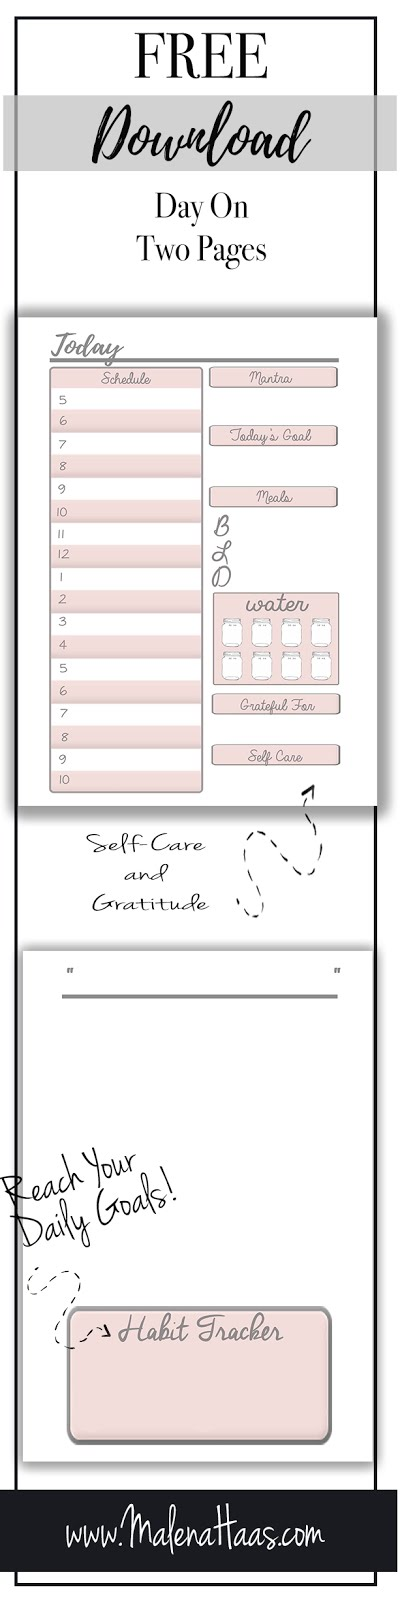 Free Download Day On Two Pages Planner Insert Download http://www.malenahaas.com/2018/03/freebie-friday-day-on-two-pages.html